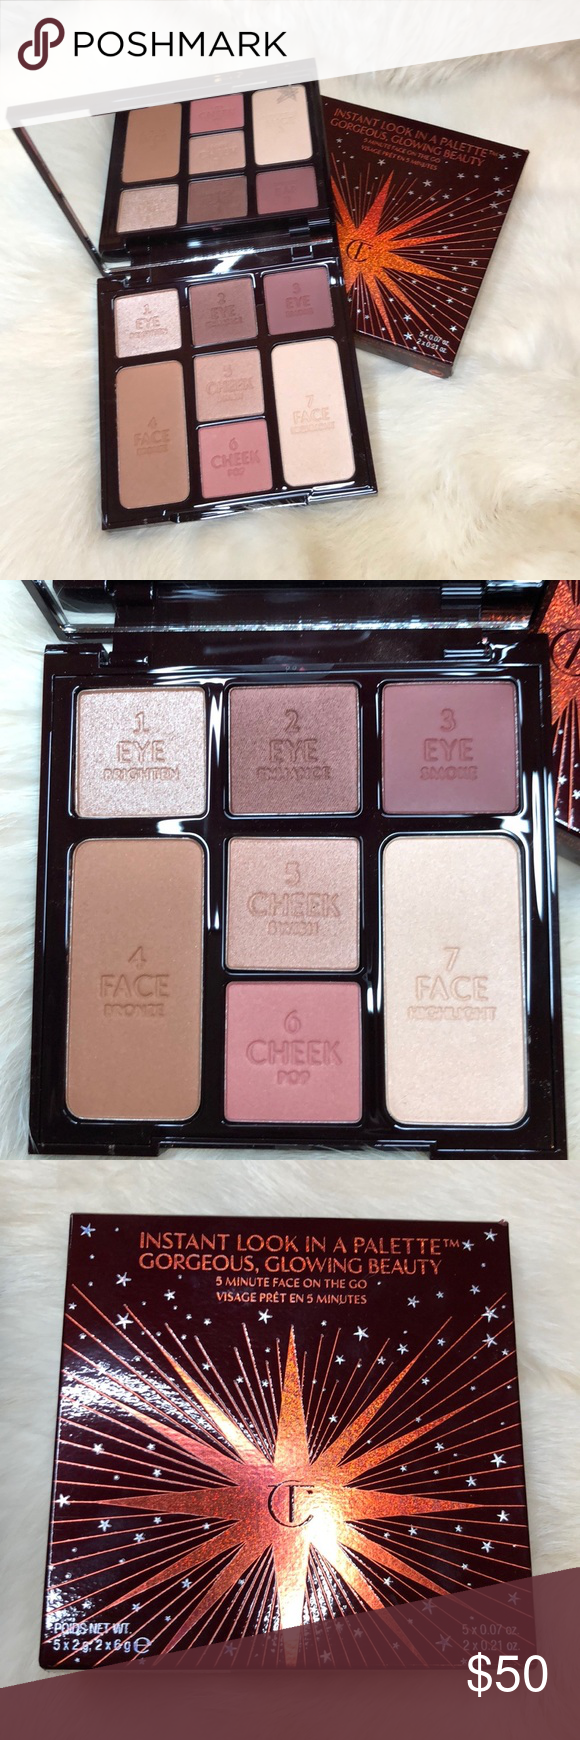 Charlotte Tilbury Instant Look In A Palette 2019 Charlotte Tilbury Charlotte Tilbury Makeup Tilbury